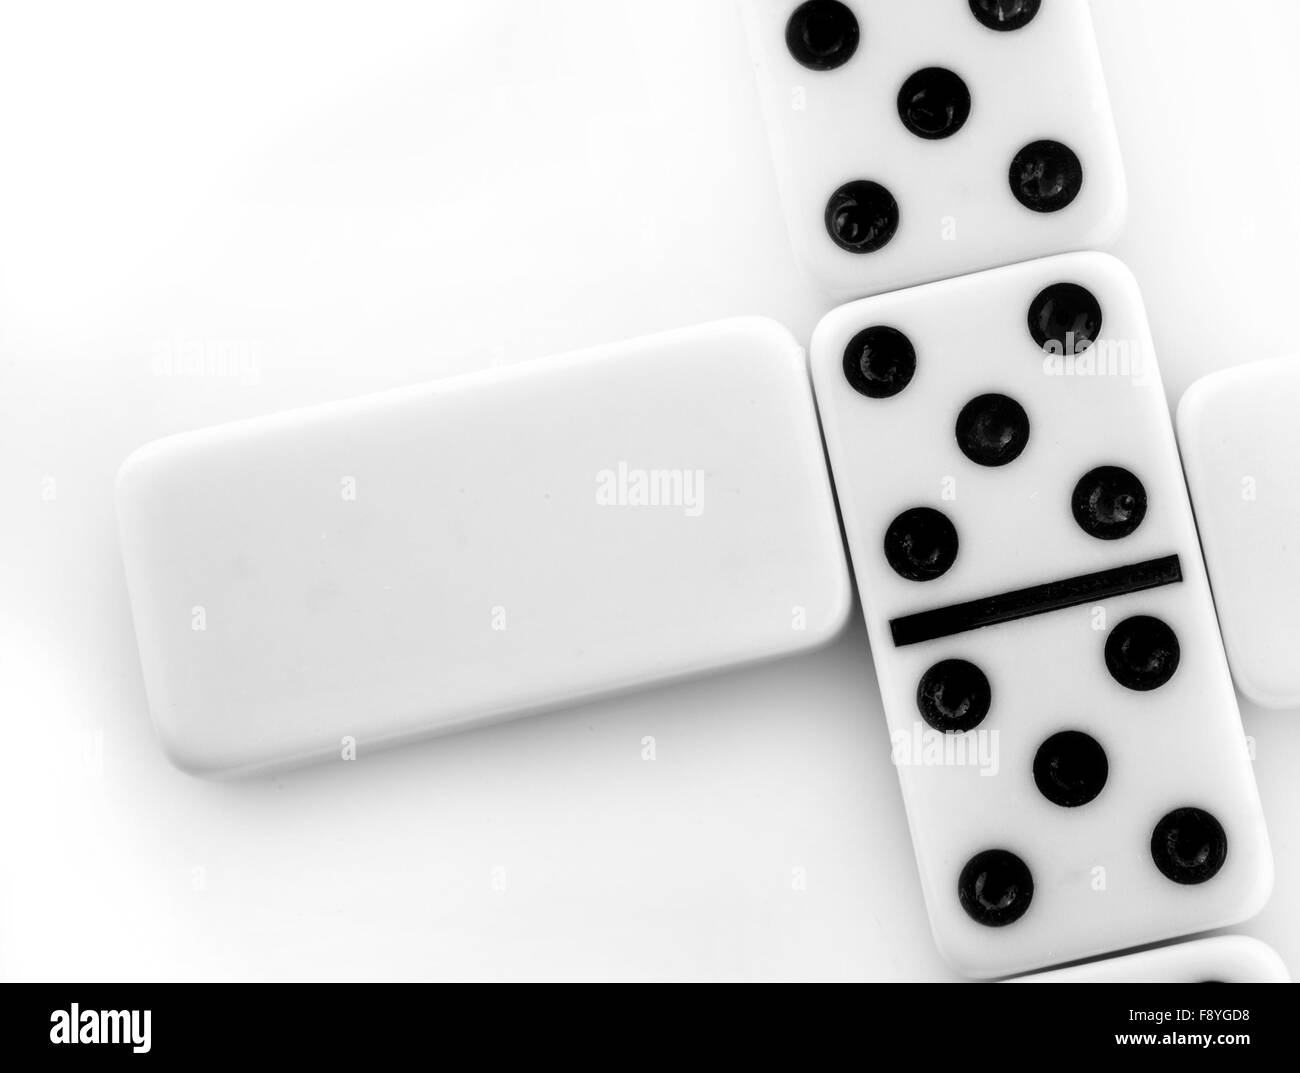 Blank Domino on a white background - Stock Image